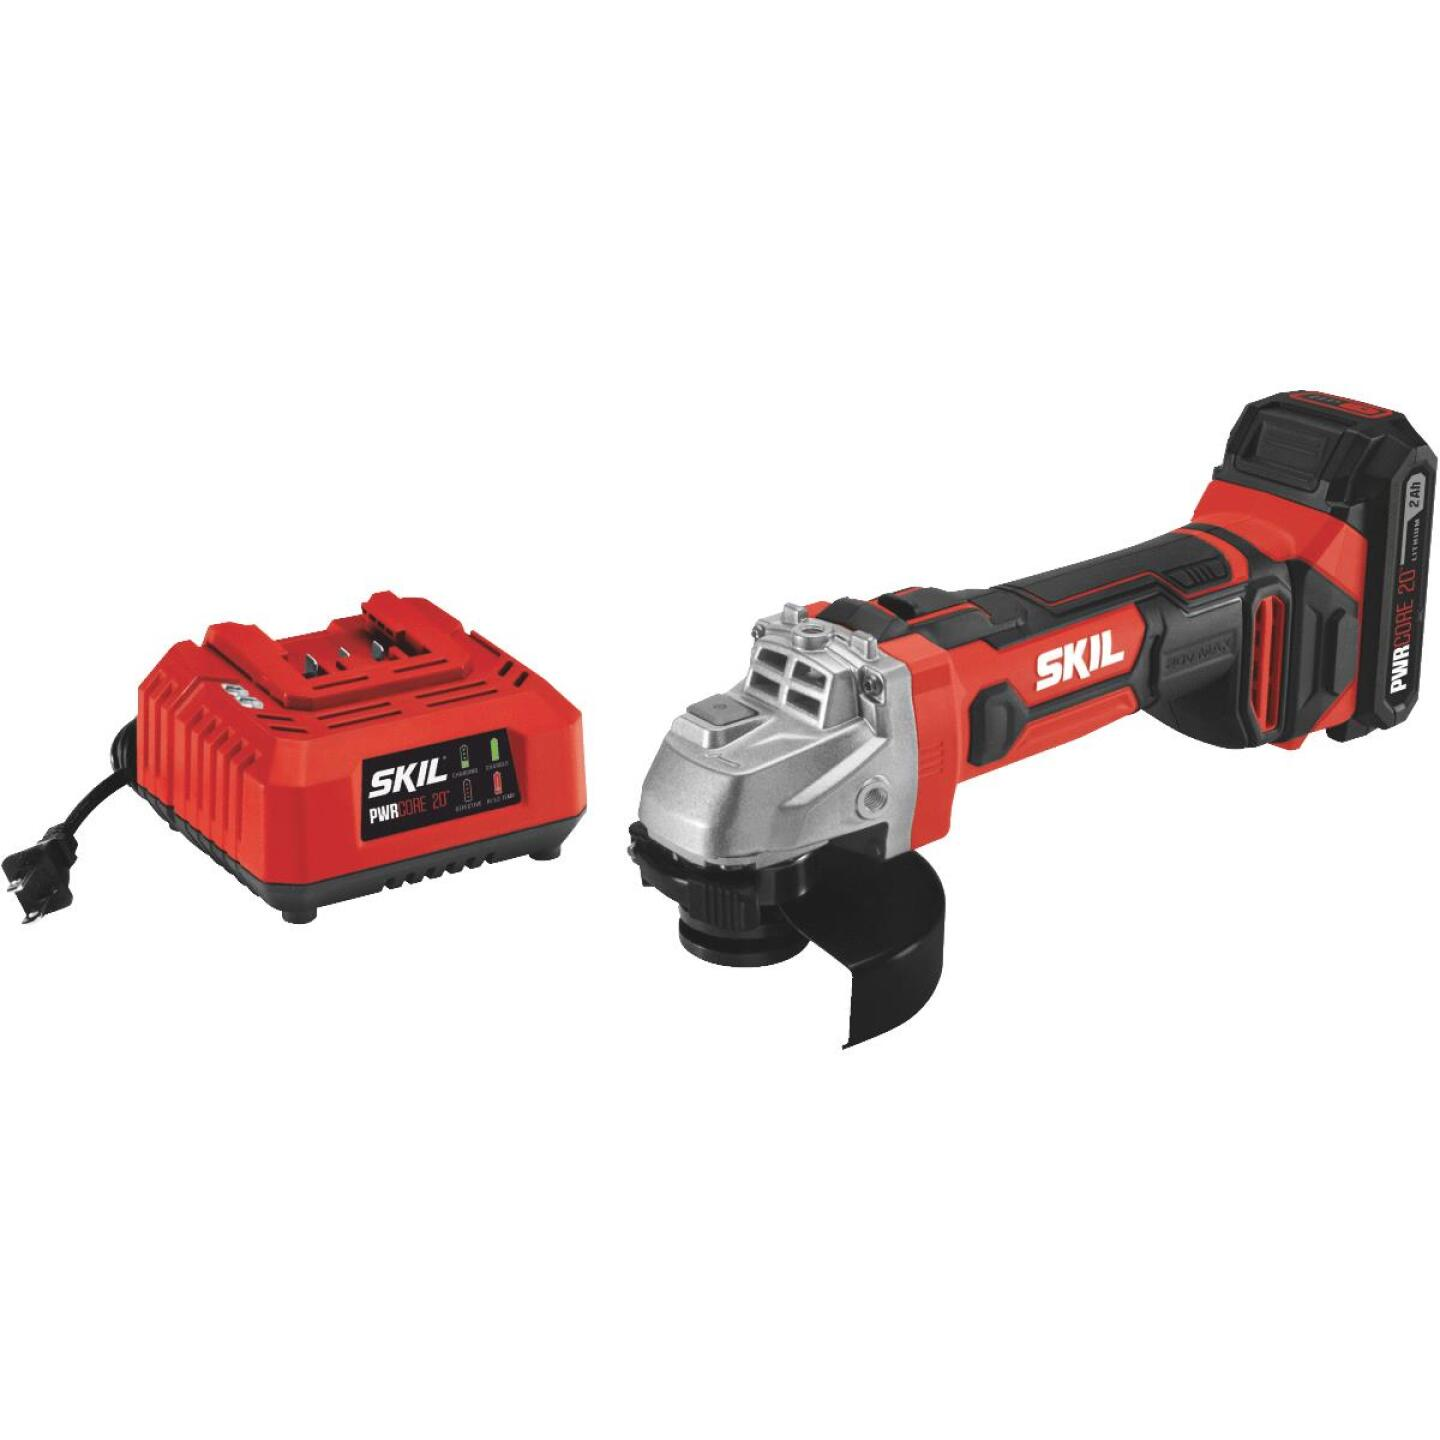 SKIL PWRCore 20 Volt Lithium-Ion 4-1/2 In. Cordless Angle Grinder Kit Image 1